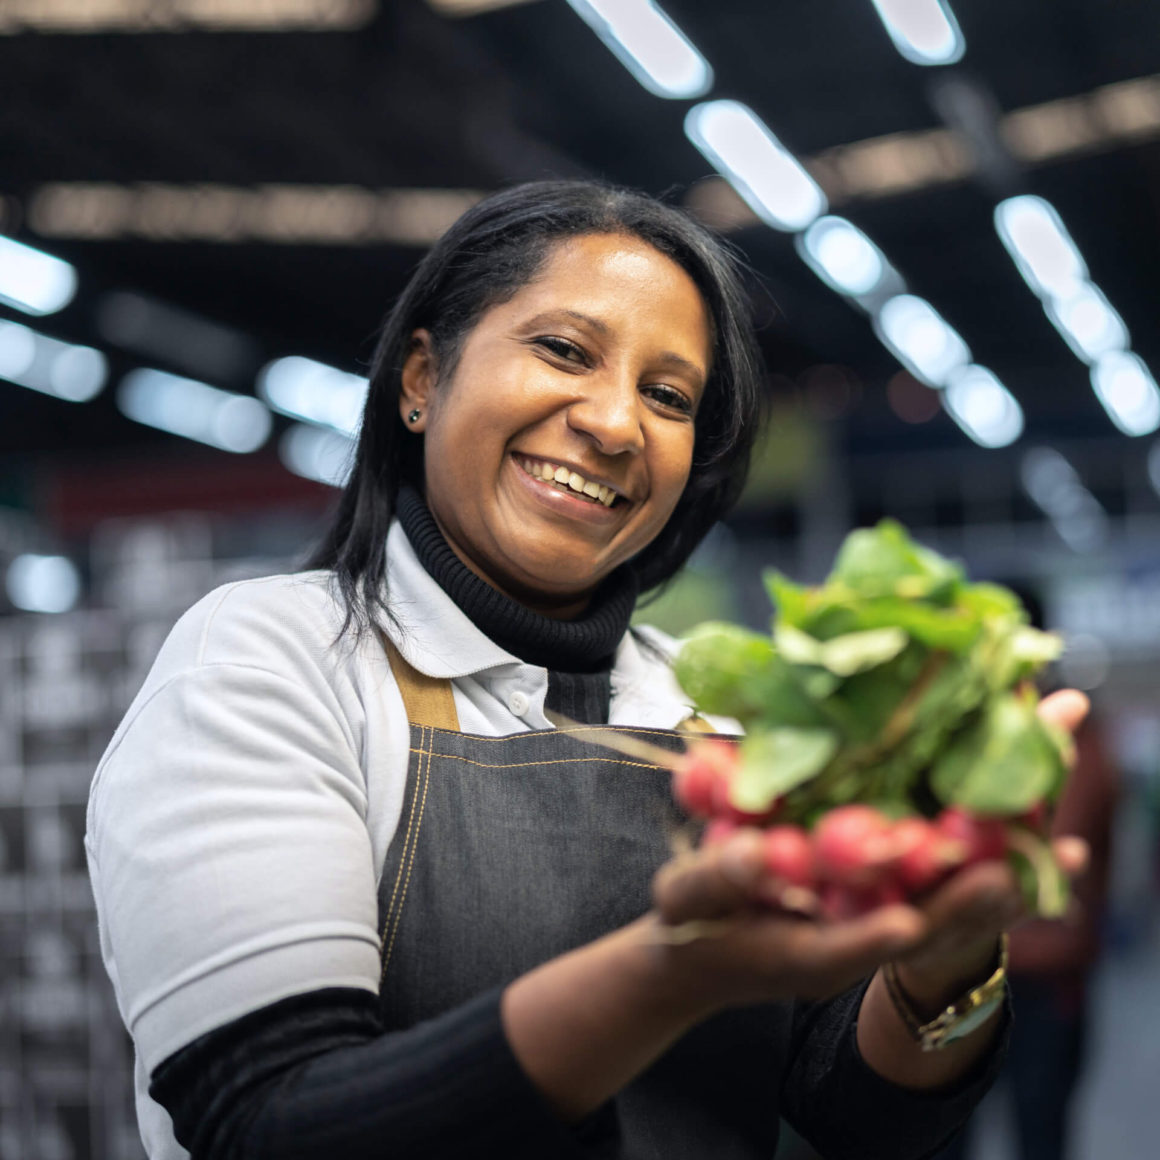 A woman at work at a grocery store, holding fresh produce and smiling.